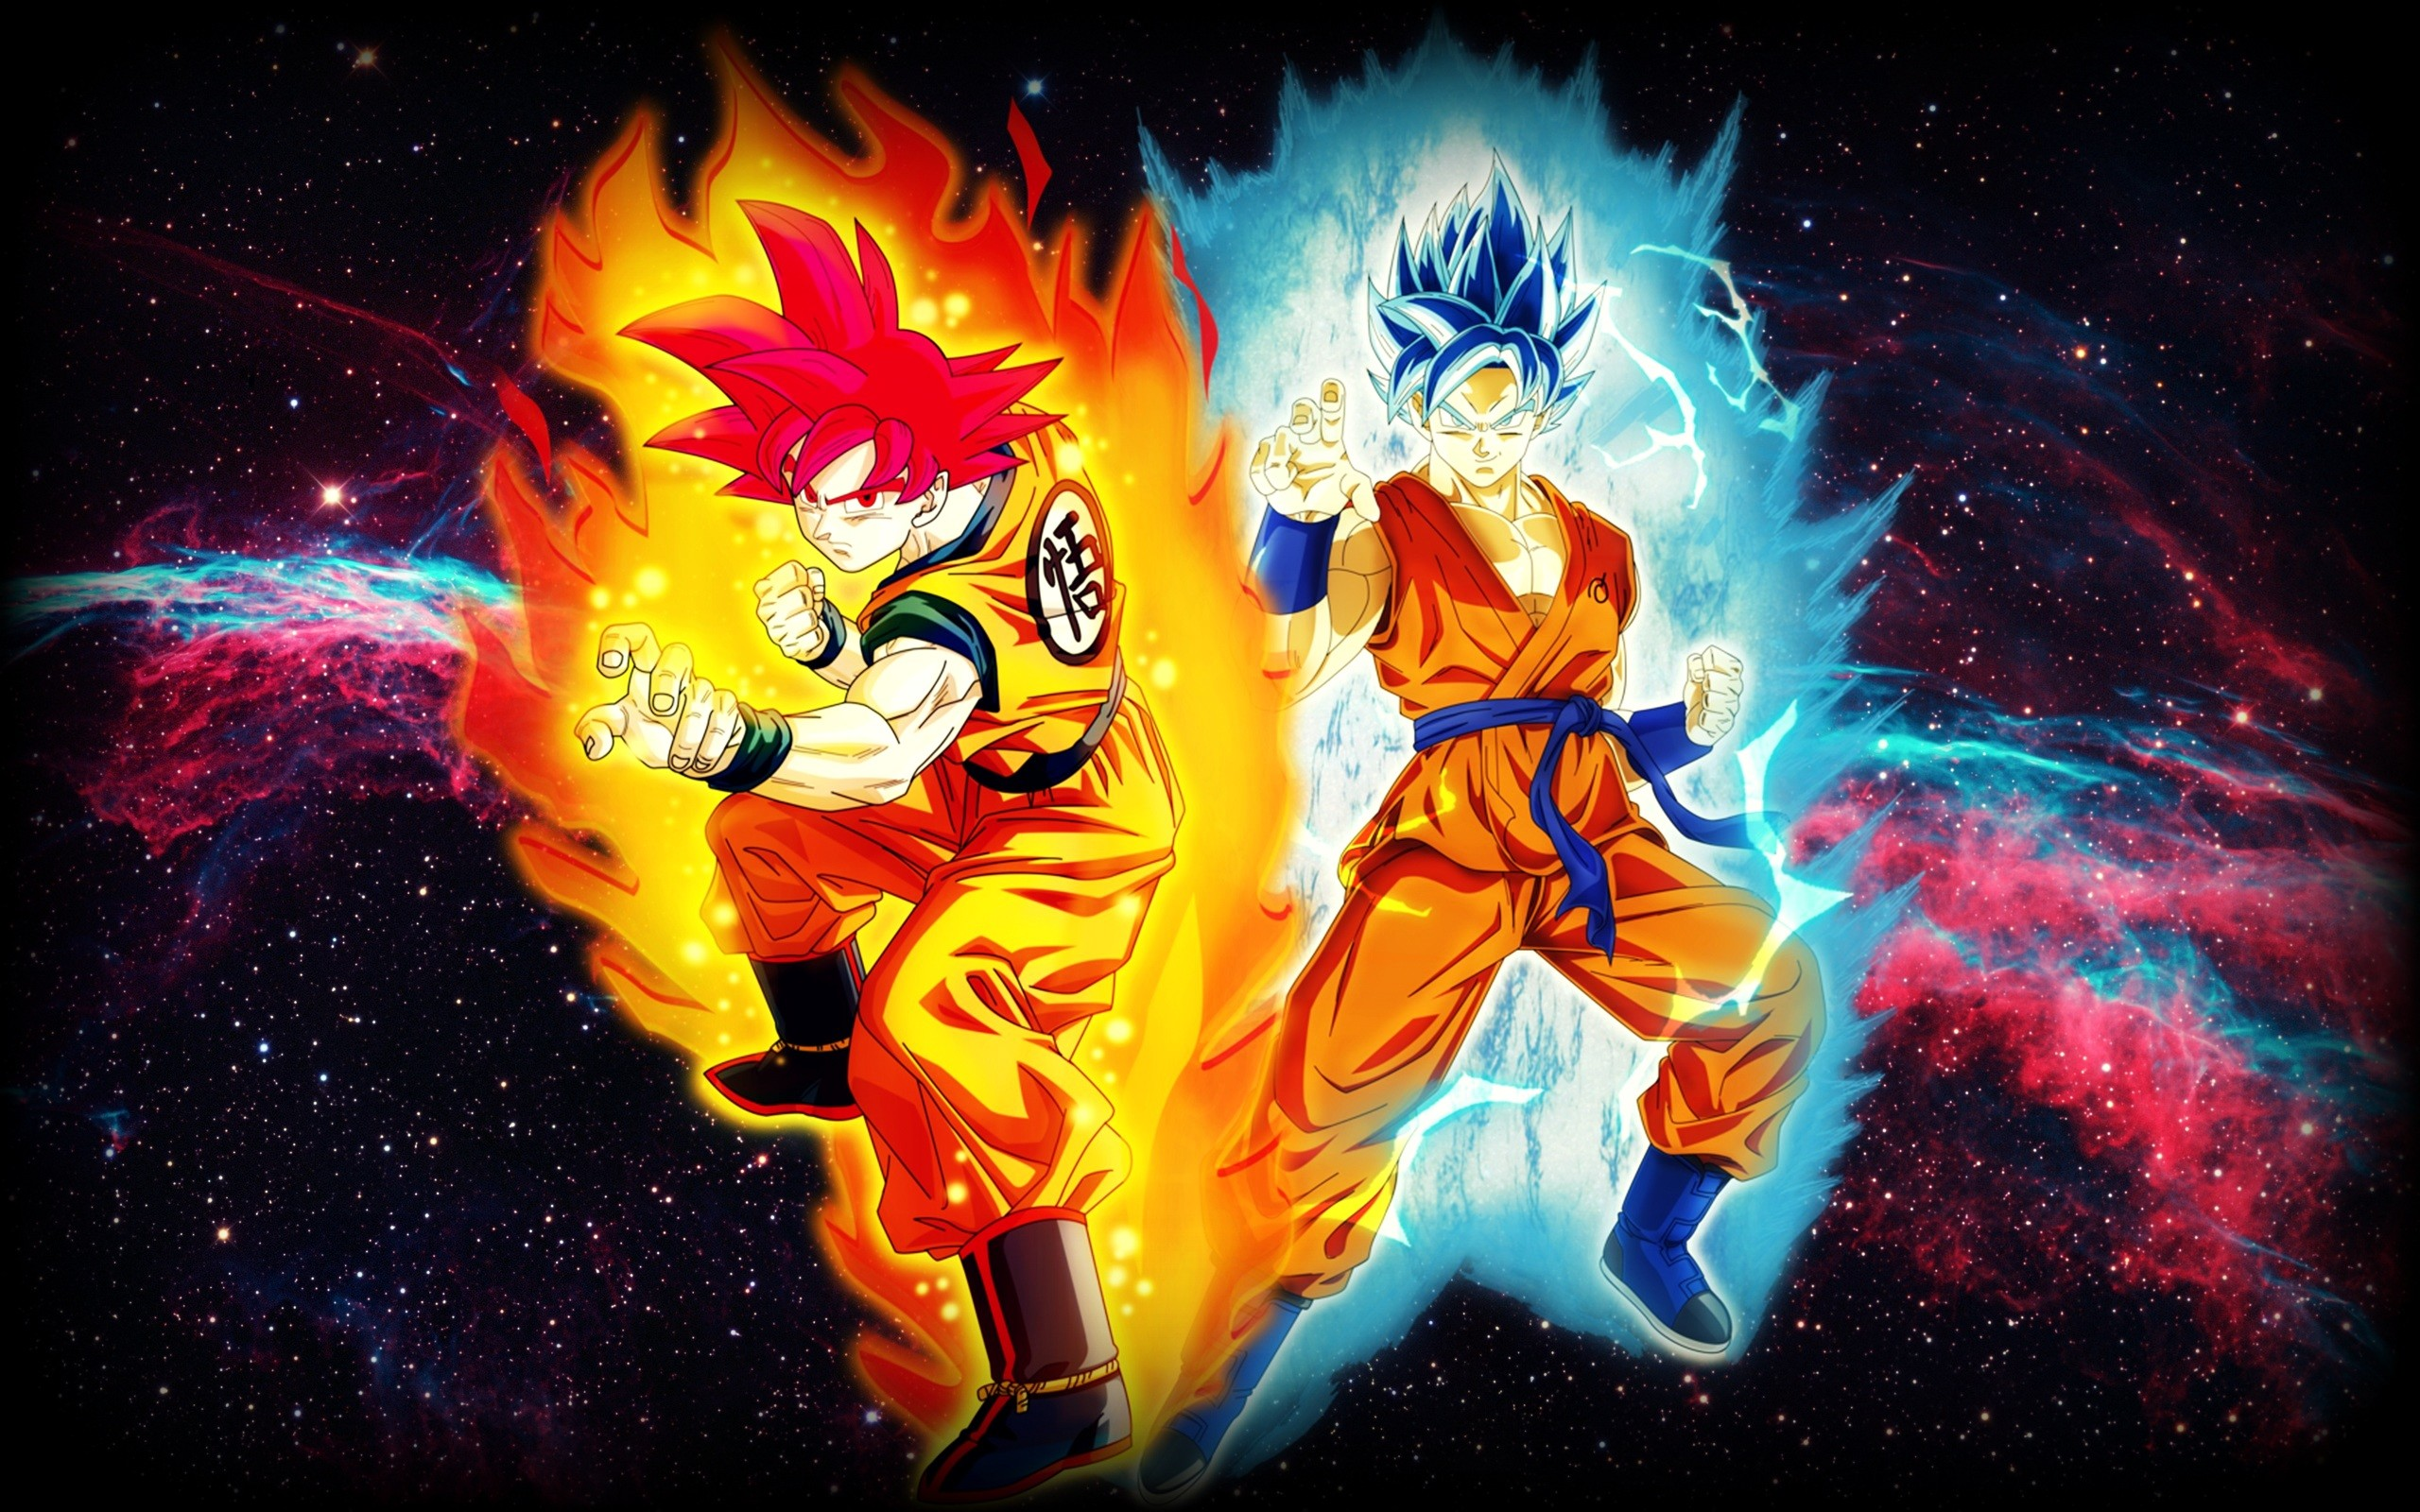 2560x1600 Goku Super Saiyan God Blue Kaioken X10 Wallpaper Image Gallery - HCPR